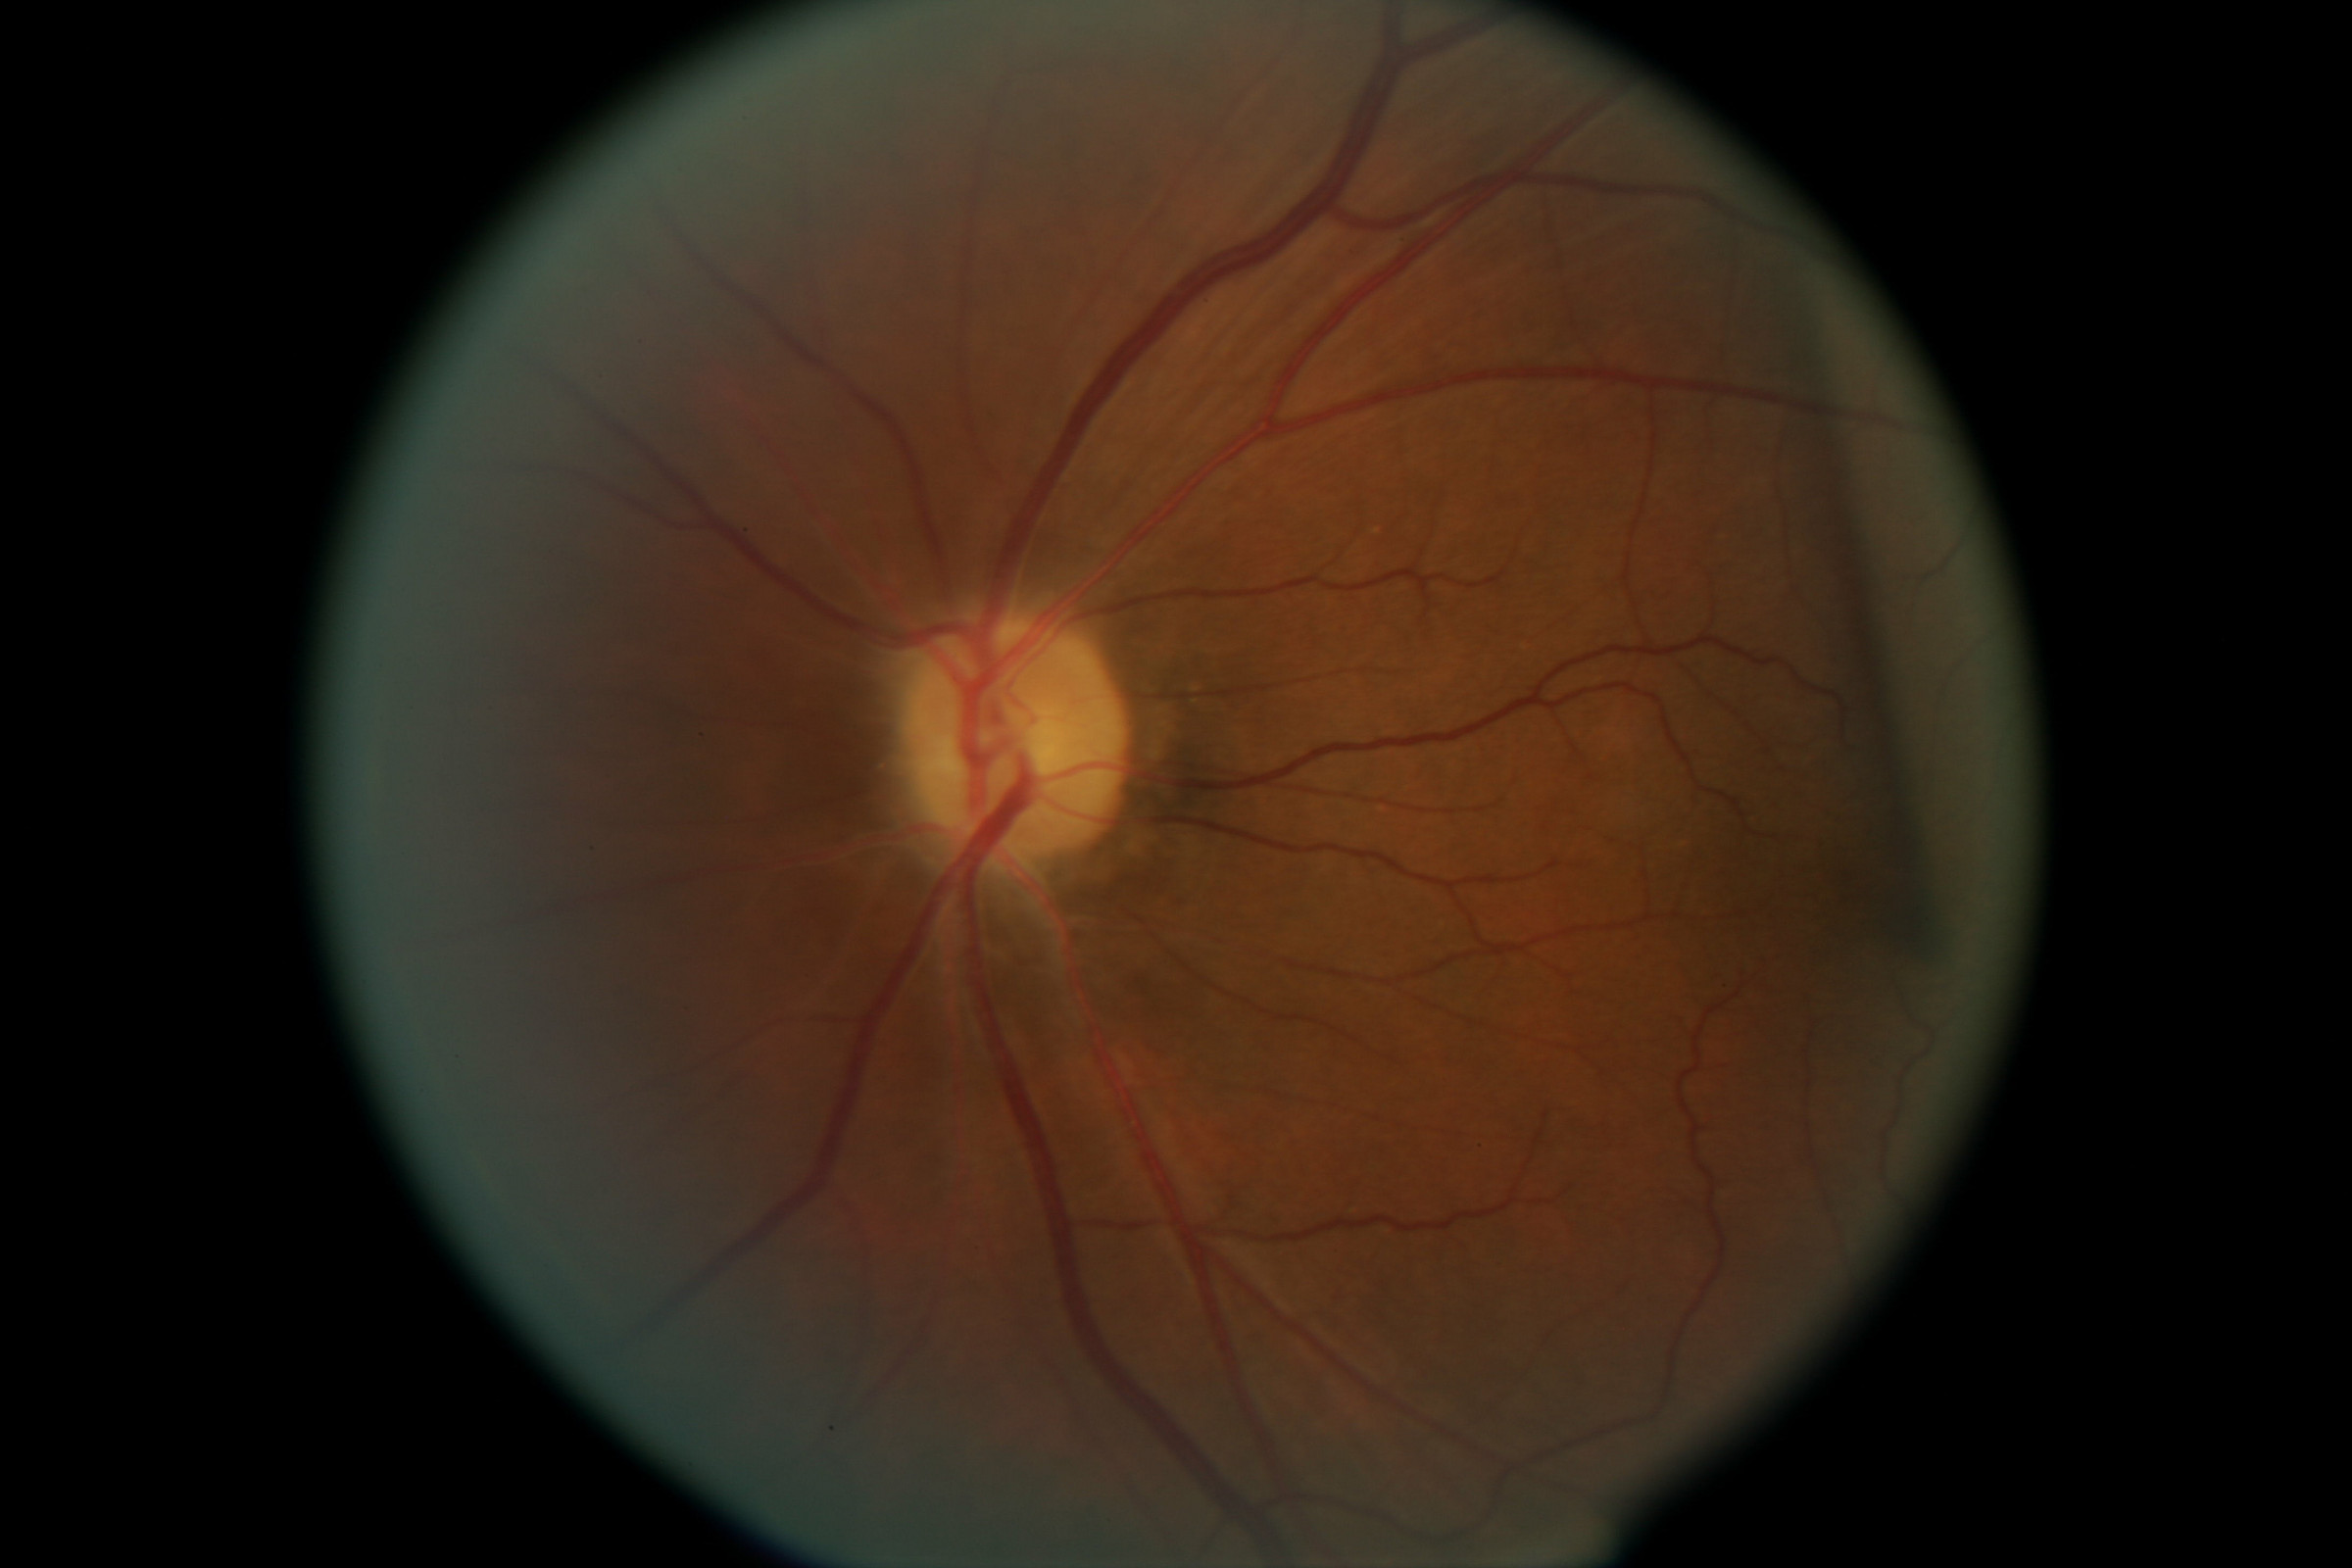 // <p>Left Eye Optic Nerve Pollar</p>